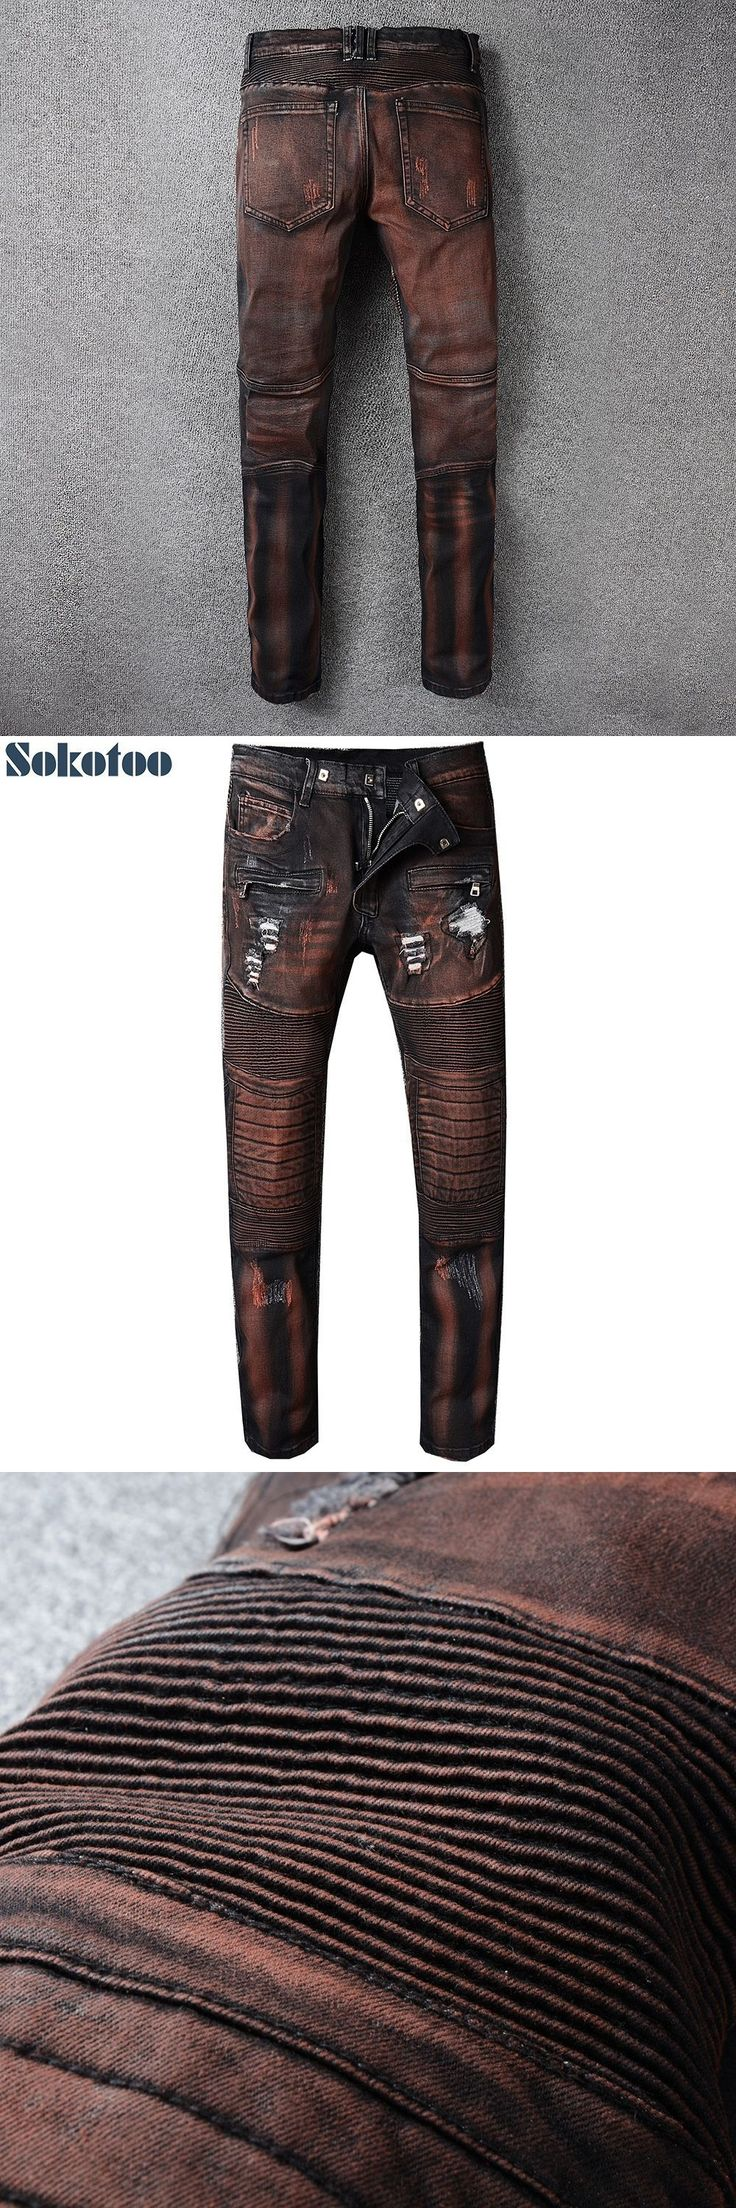 Sokotoo Men's pleated holes ripped biker jeans for motorcycle Slim fit stretch cotton denim pants